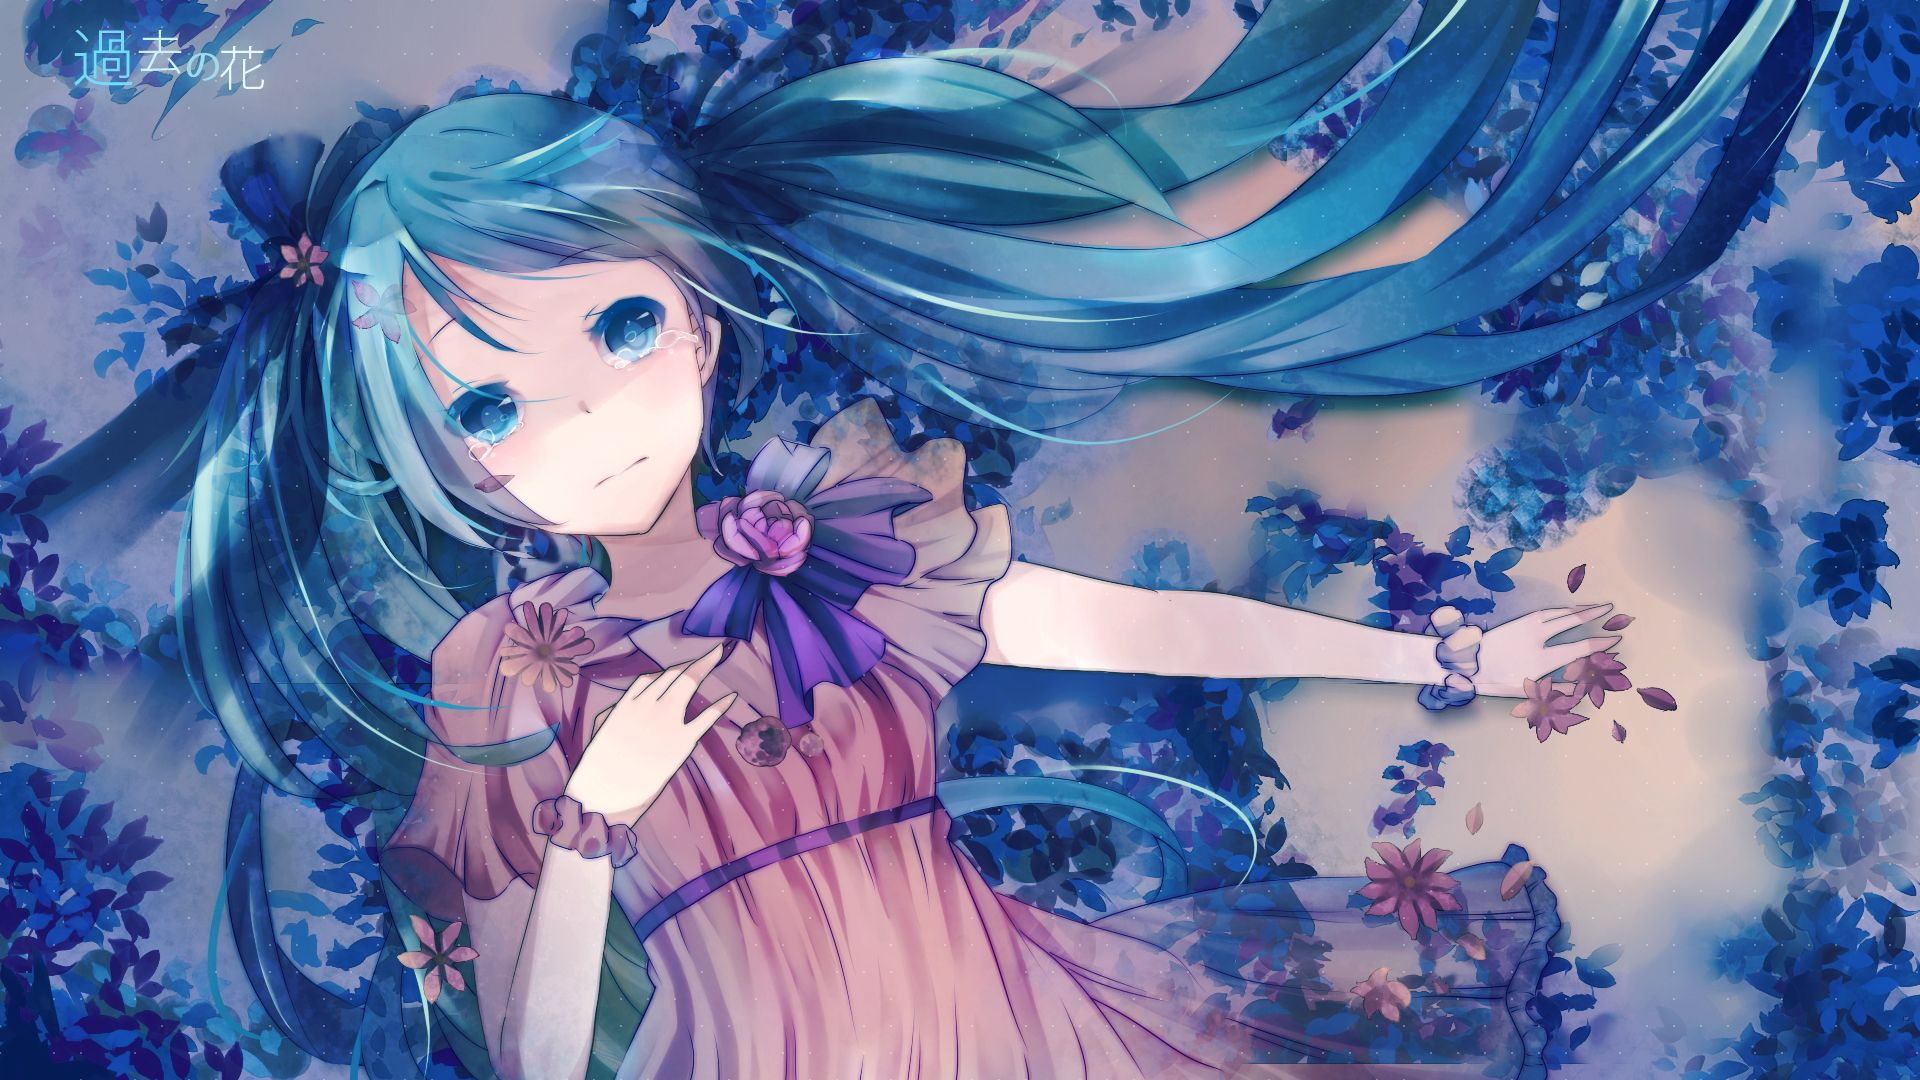 Two Magical Mirai Miku wallpapers at x HD Wallpaper From